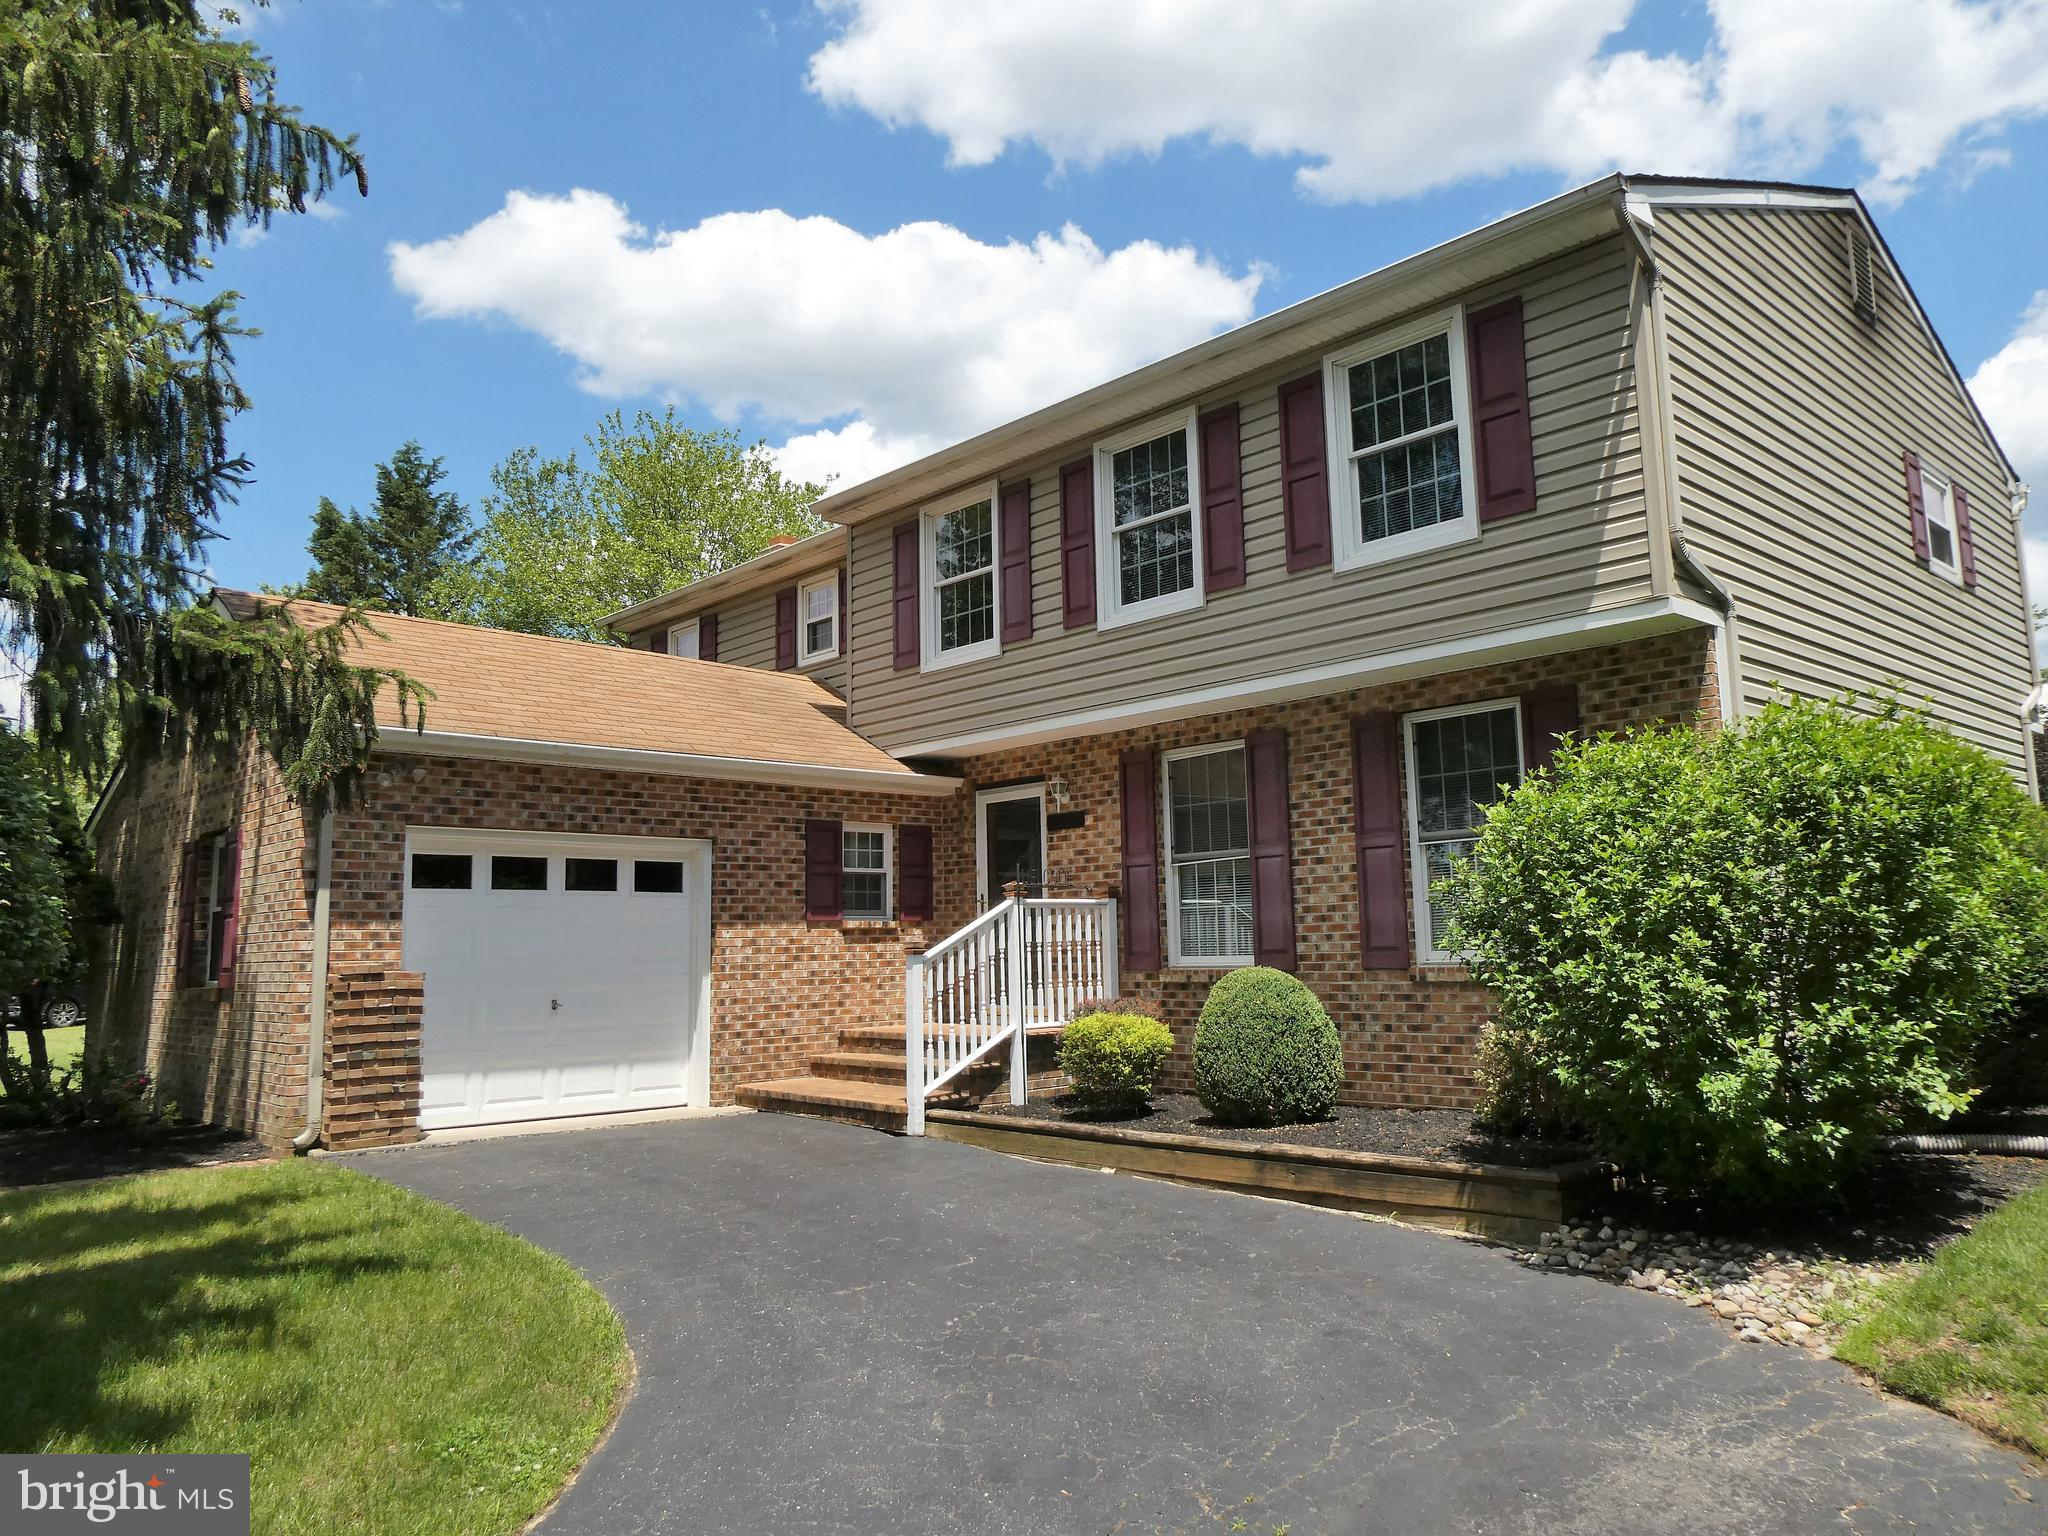 Final and best due by 3:00 today 6/28.  This is the home of your dreams! Impeccable 2 story Colonial with 4 bedrooms, 2.5 baths, 25 x 12 Kitchen, 18 x 16 Great Room with brick fireplace, 18 x 11 Dining room, 24 x 22 Finished basement, 19 x 15 Formal Dining room. Gas heat, central air, 1 car garage and 18 x 36 inground pool. Brick and vinyl exterior siding. Windows, heat and air newer within the last 10 years. Quiet community, near everything. Beautiful hardwood floors in many parts of the home.